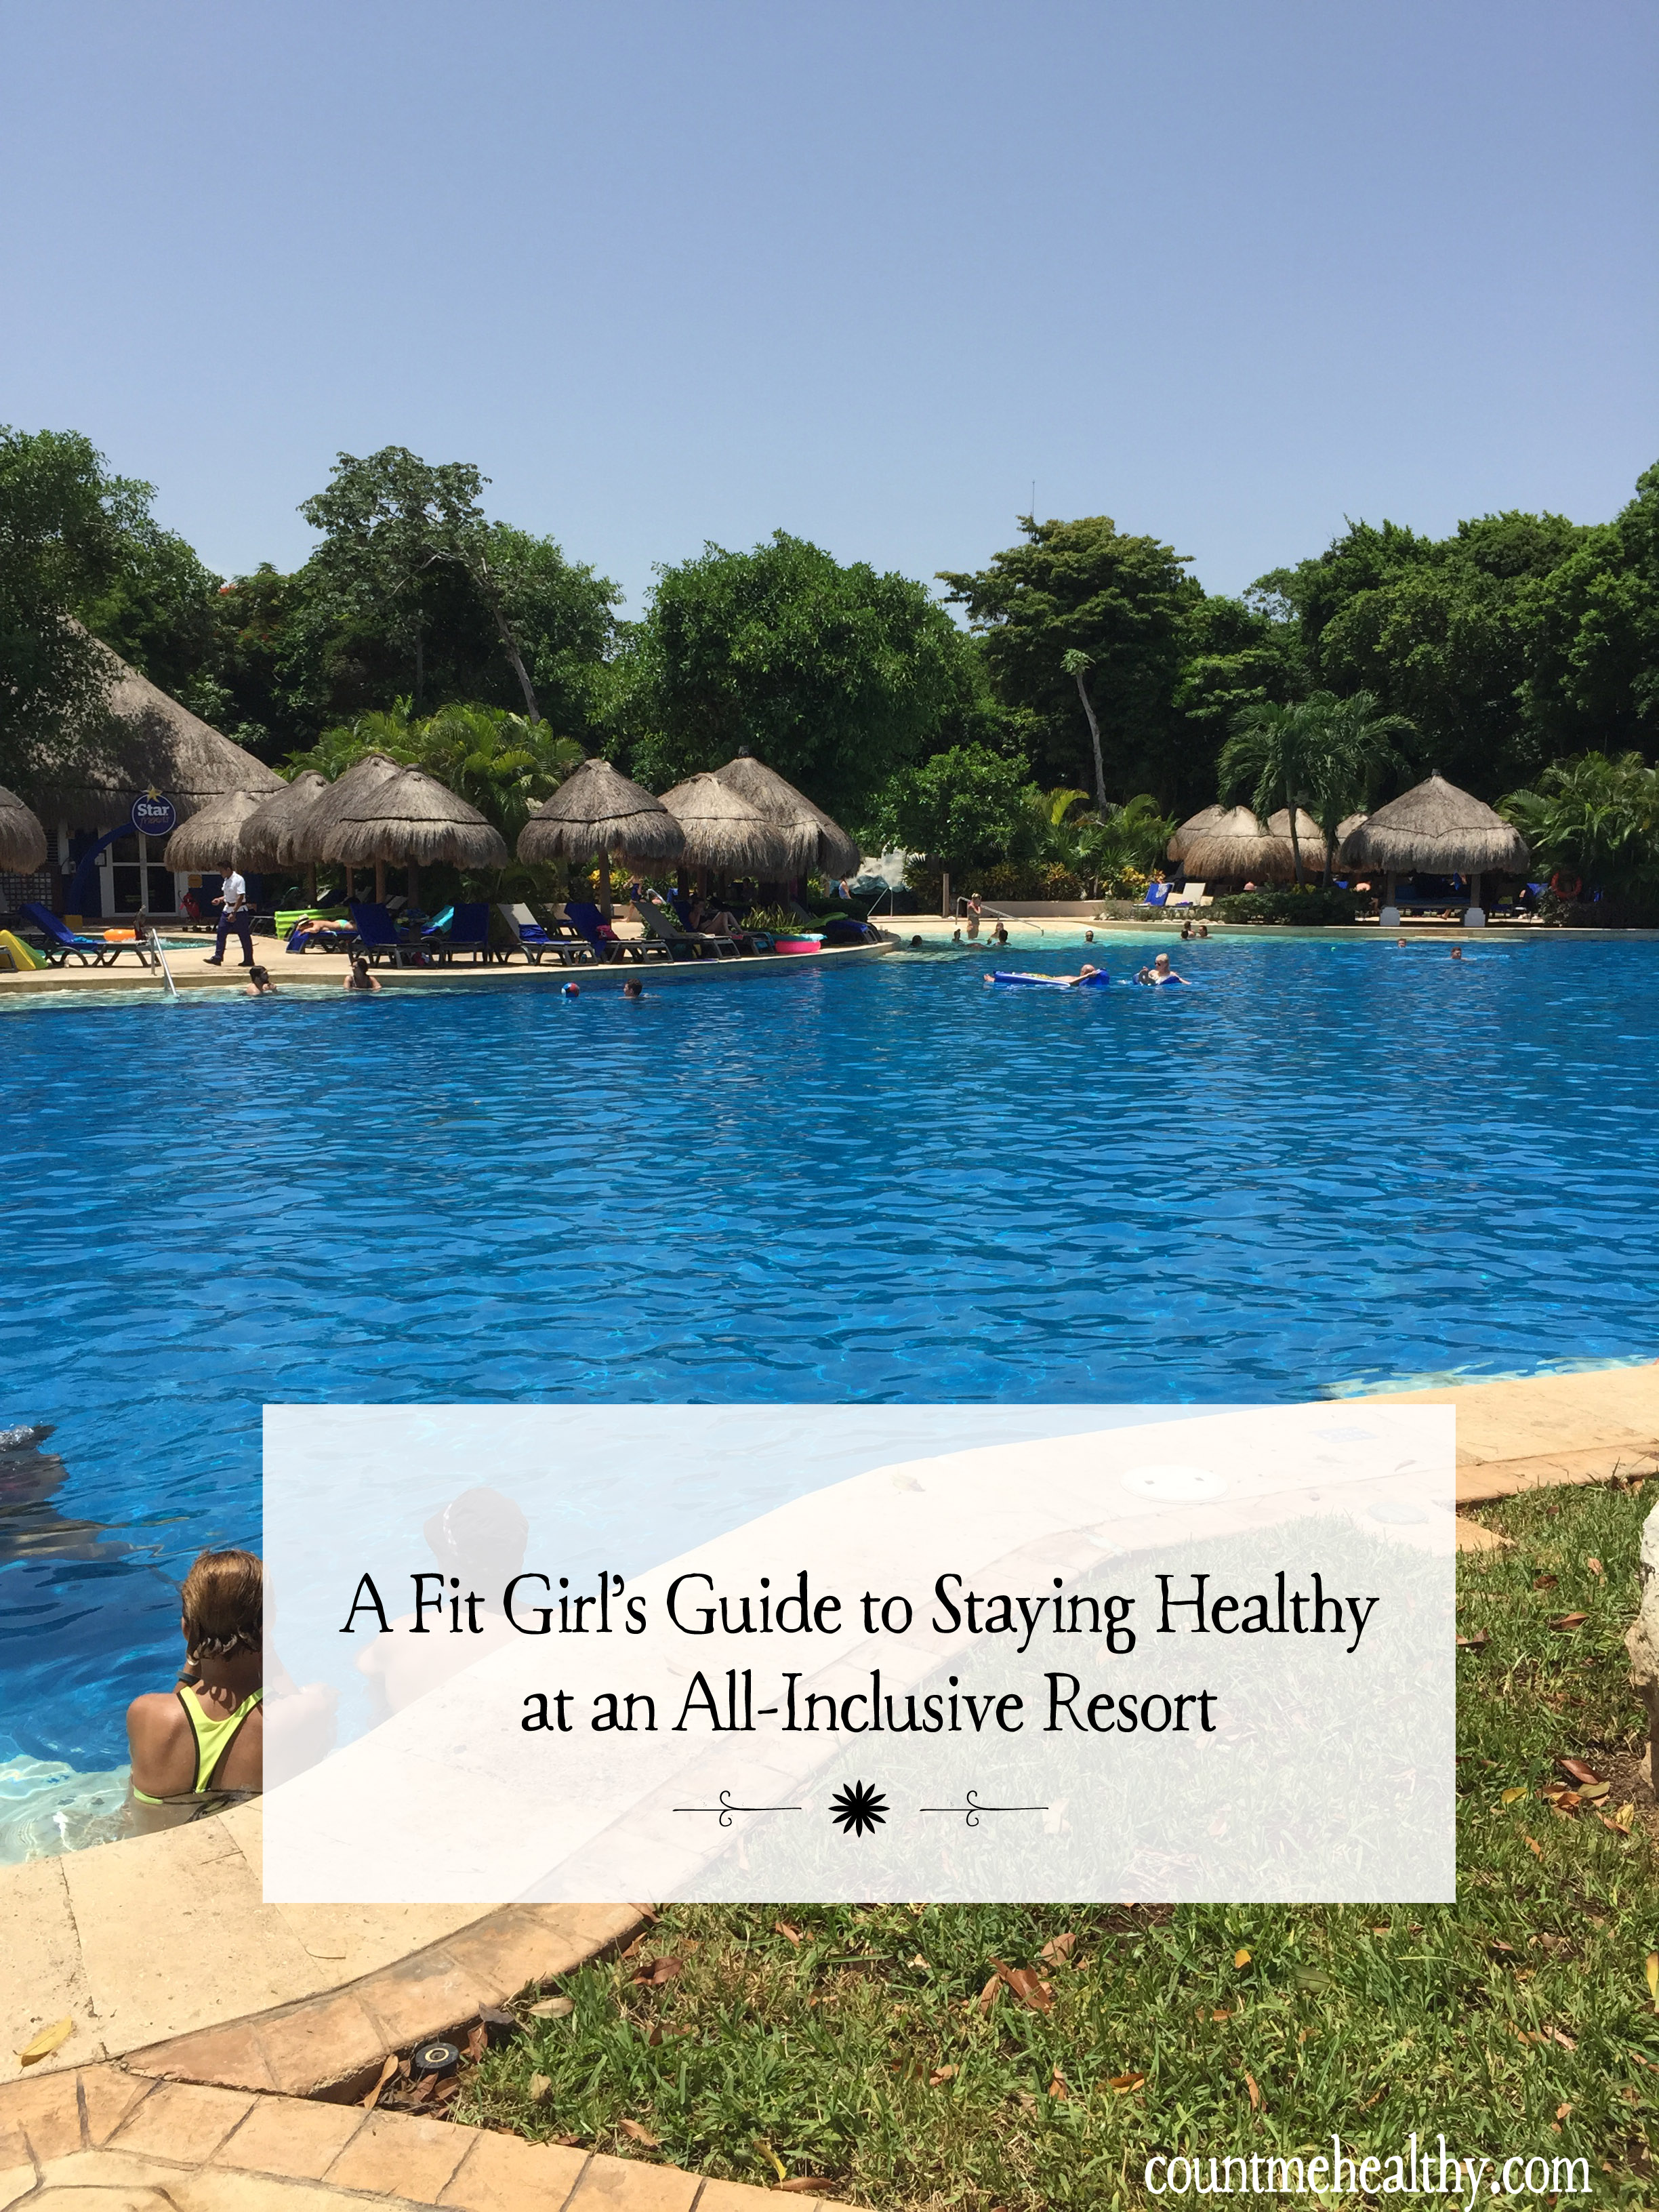 A Fit Girl's Guide to Staying Healthy at an All-Inclusive Resort